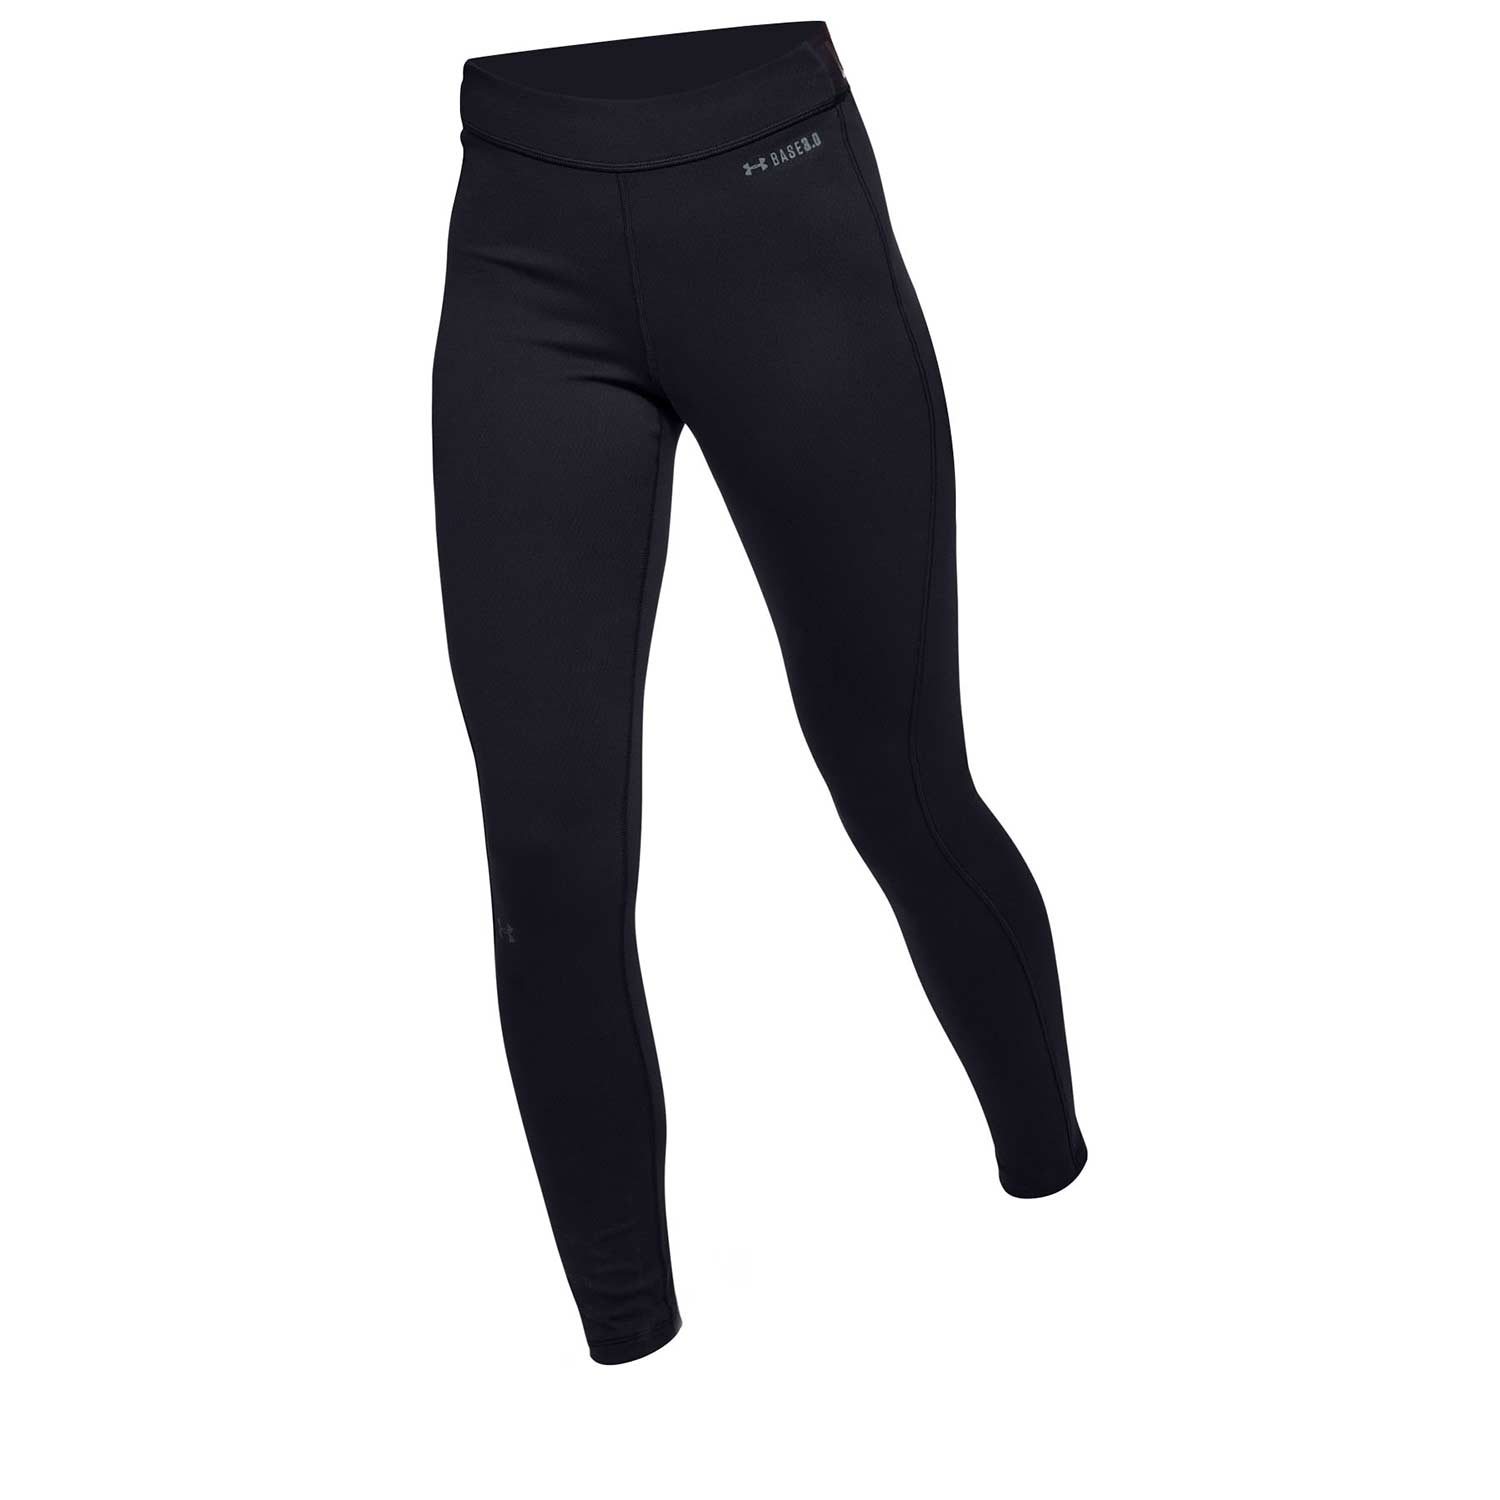 Under Armour Women's ColdGear Base 3.0 Leggings